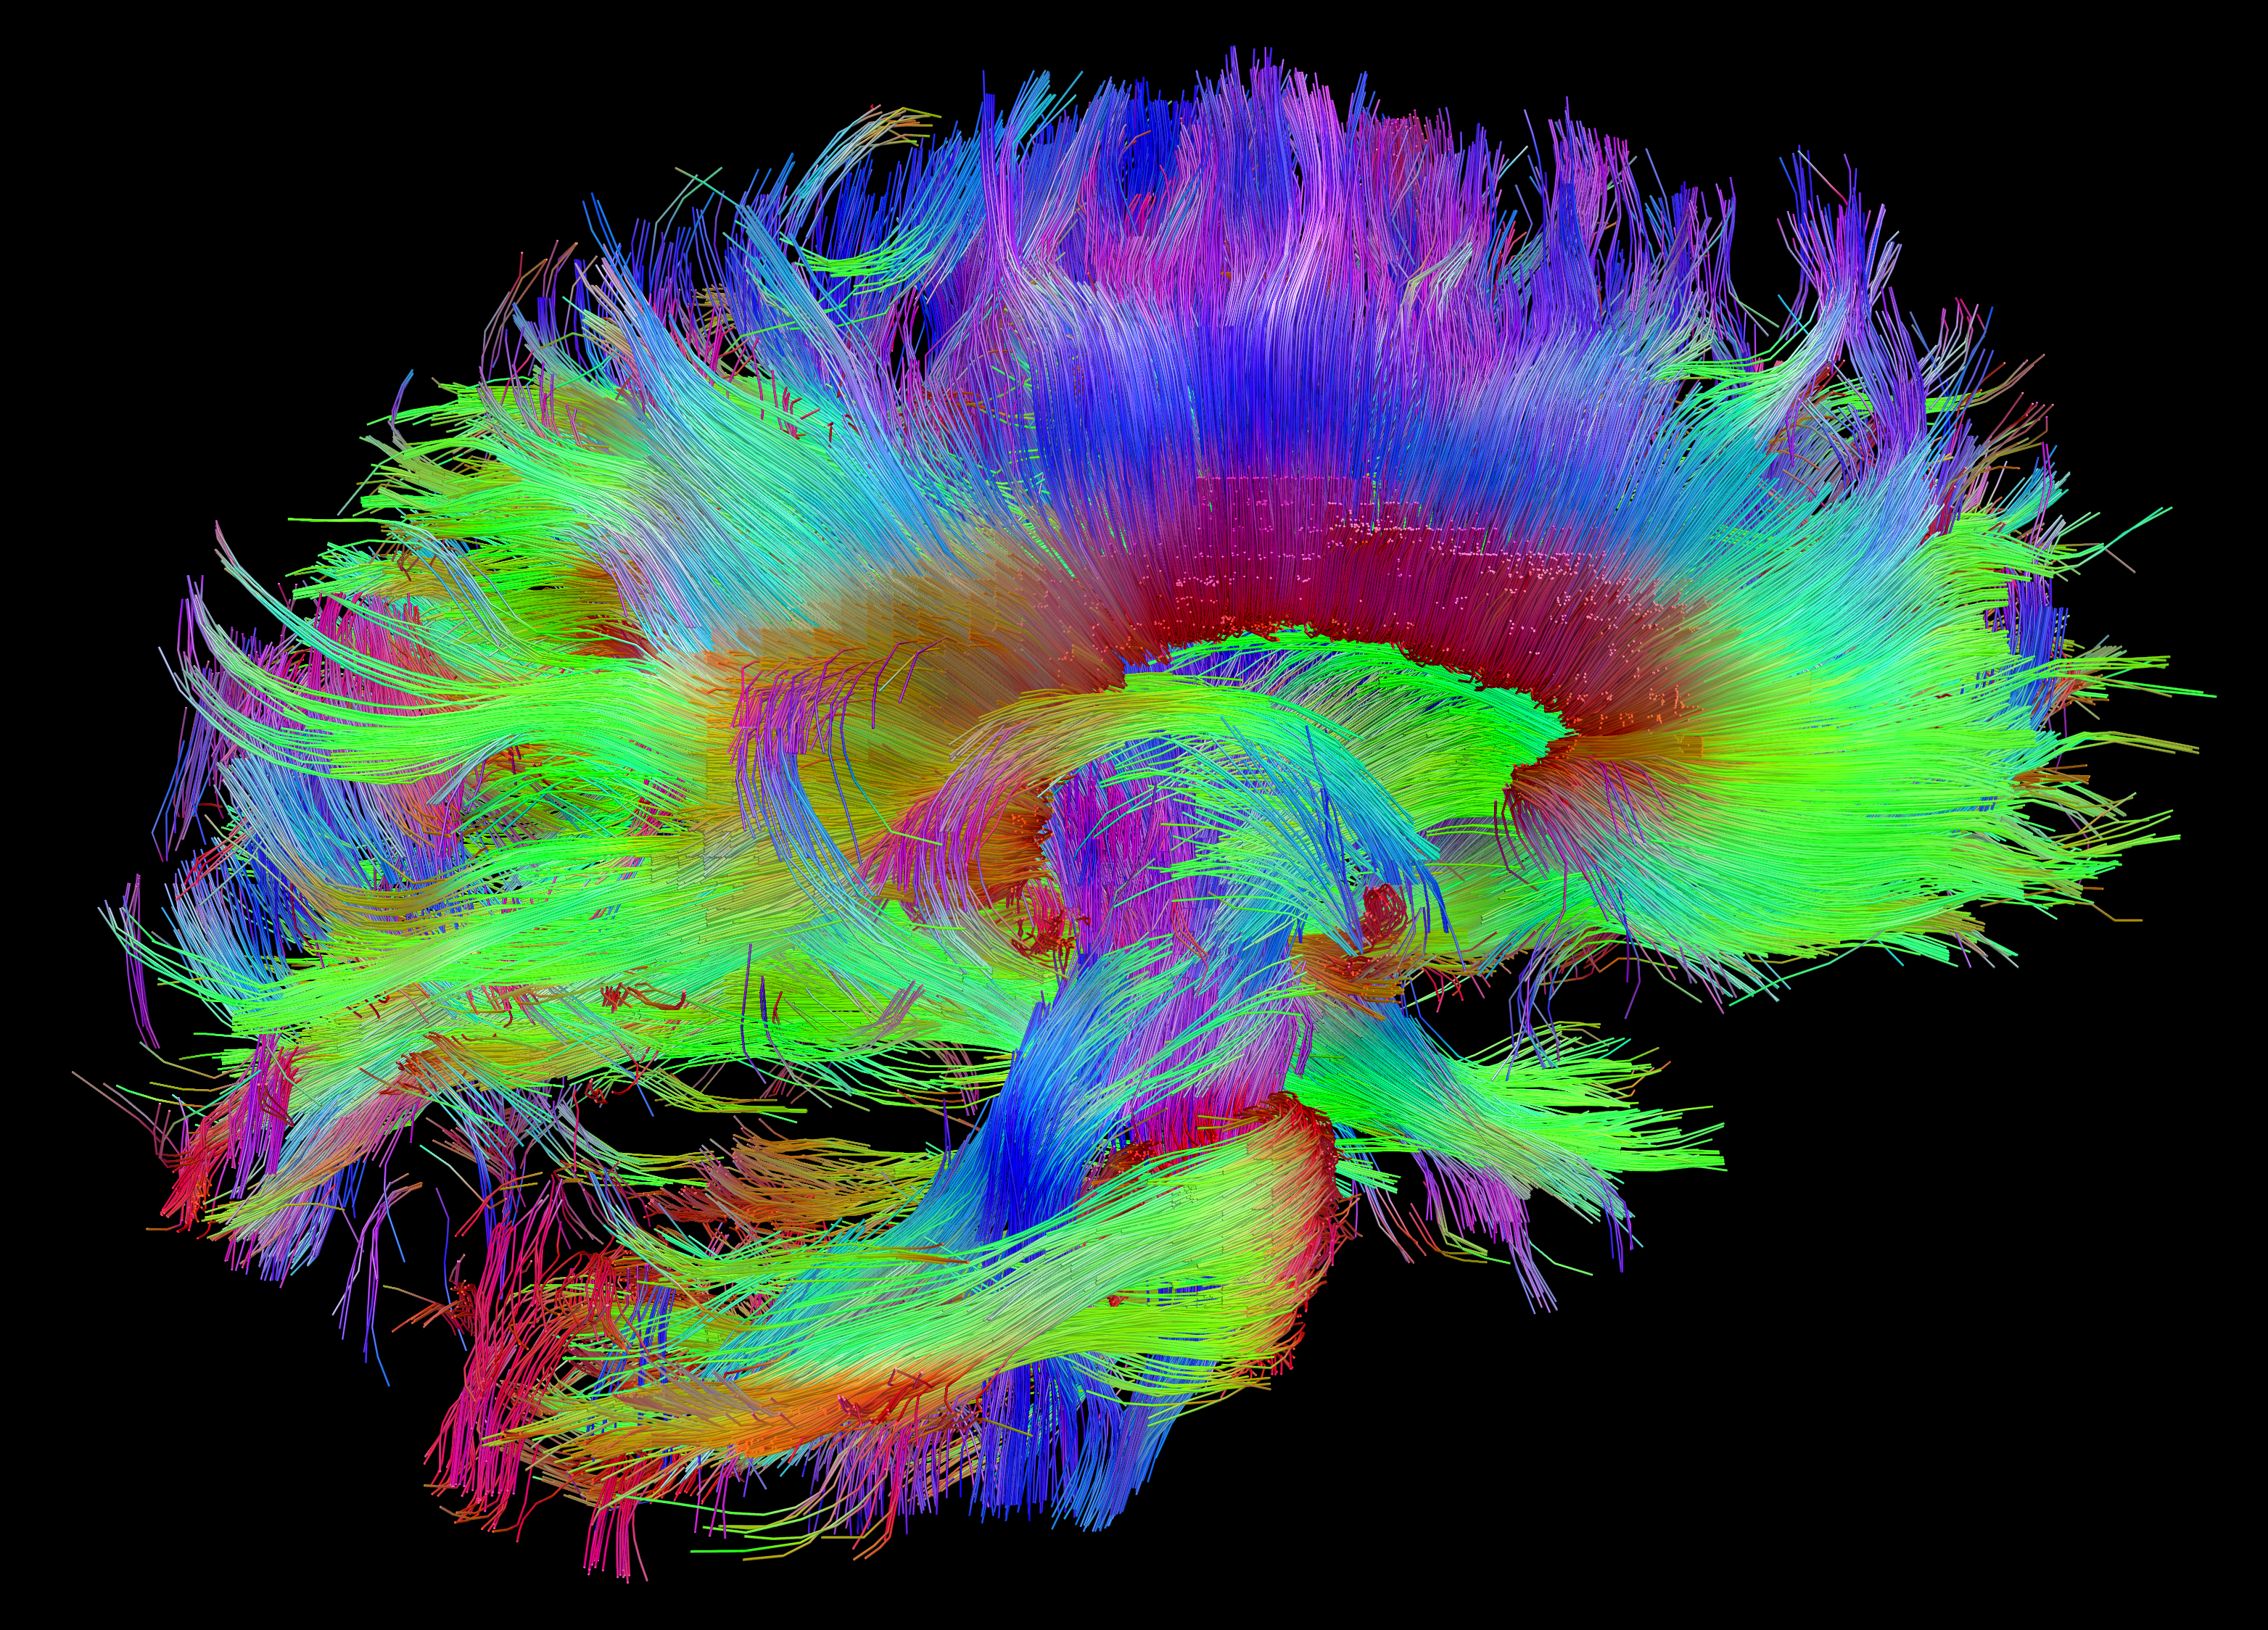 If Genes Dont Turn Off Brains Wiring >> Making The Connections Study Links Brain S Wiring To Human